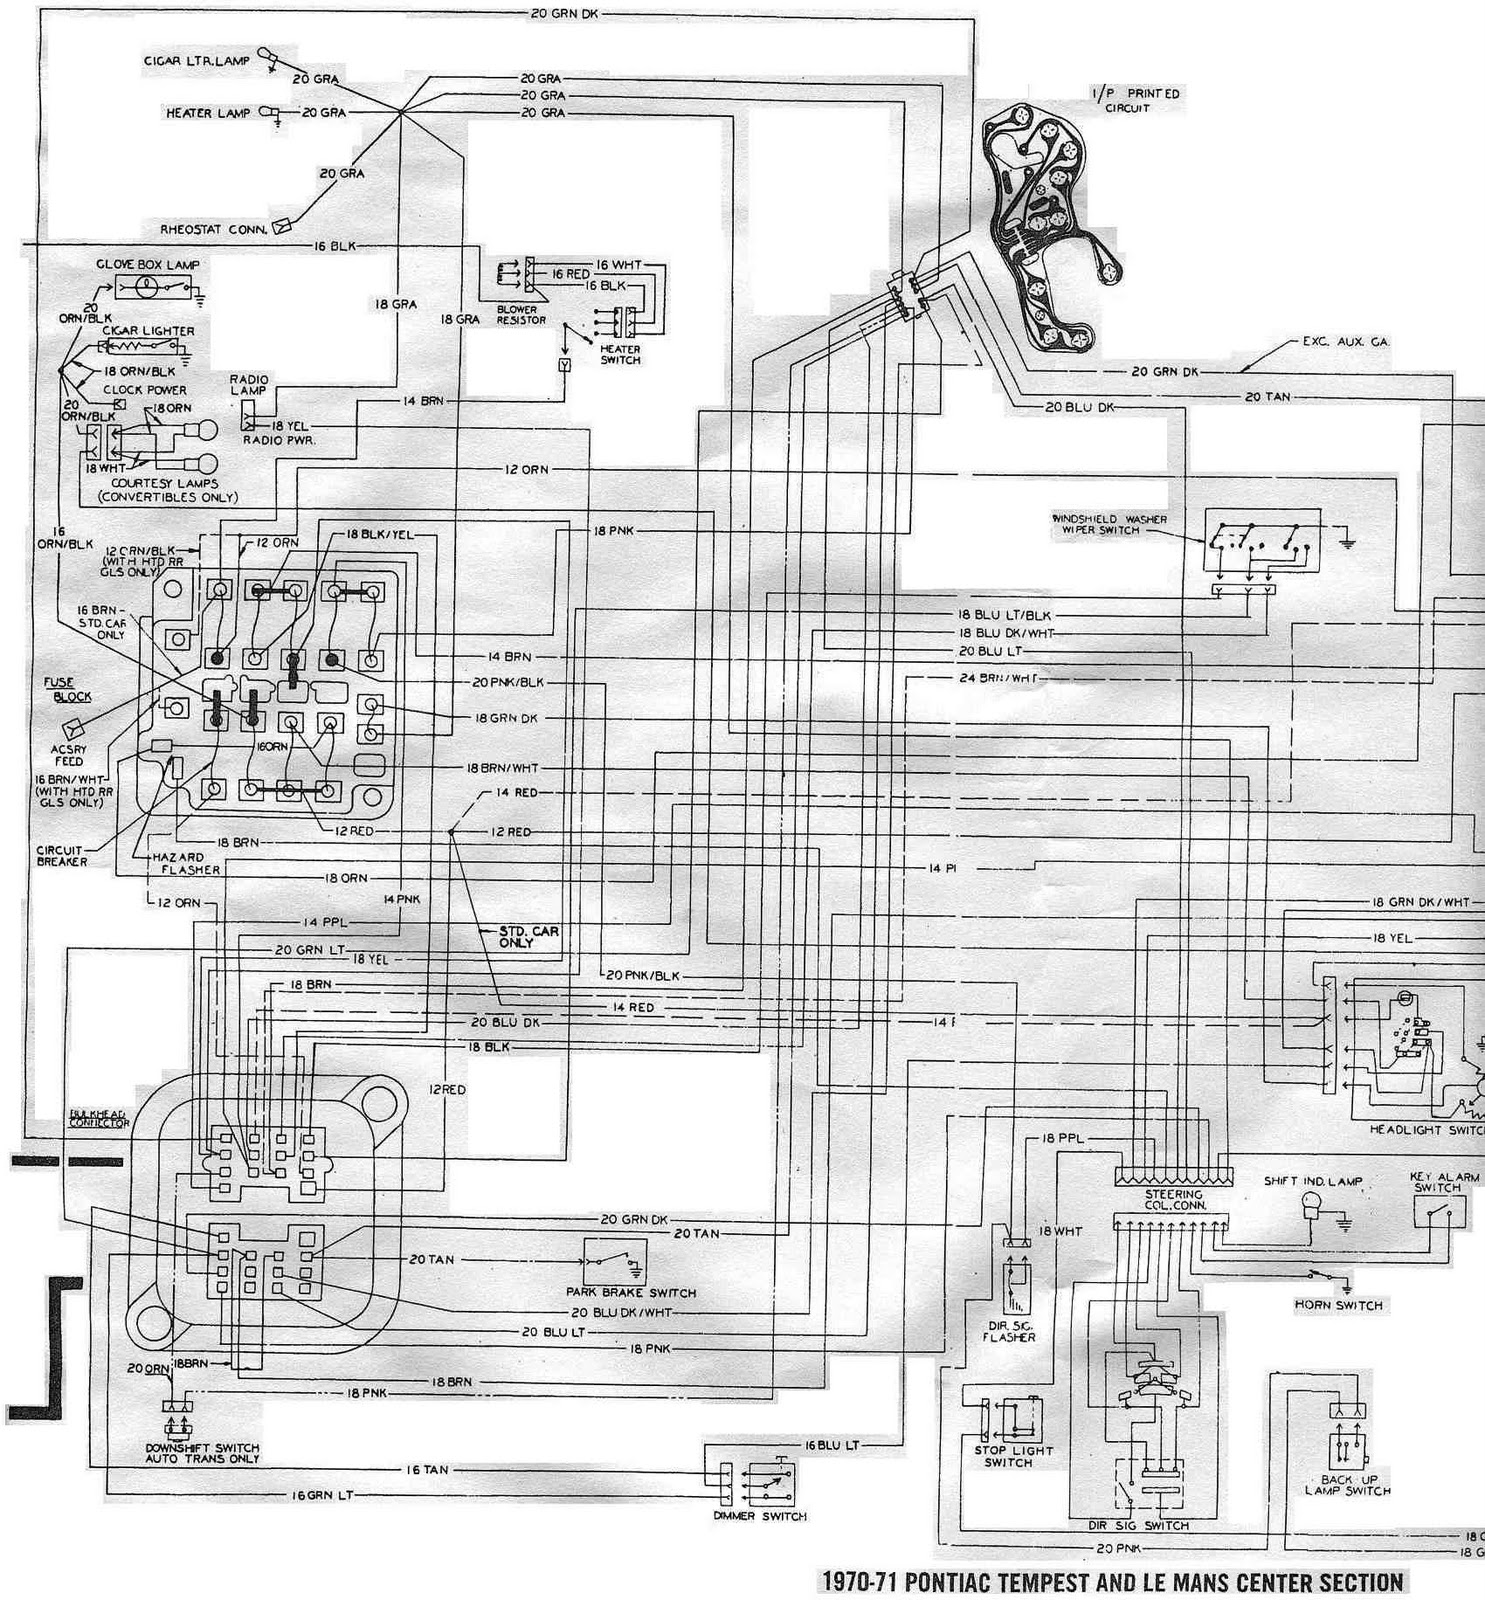 hight resolution of 66 gto wiring diagram wiring diagram blogs 2004 pontiac gto wiring diagram 1966 pontiac gto engine wiring diagram